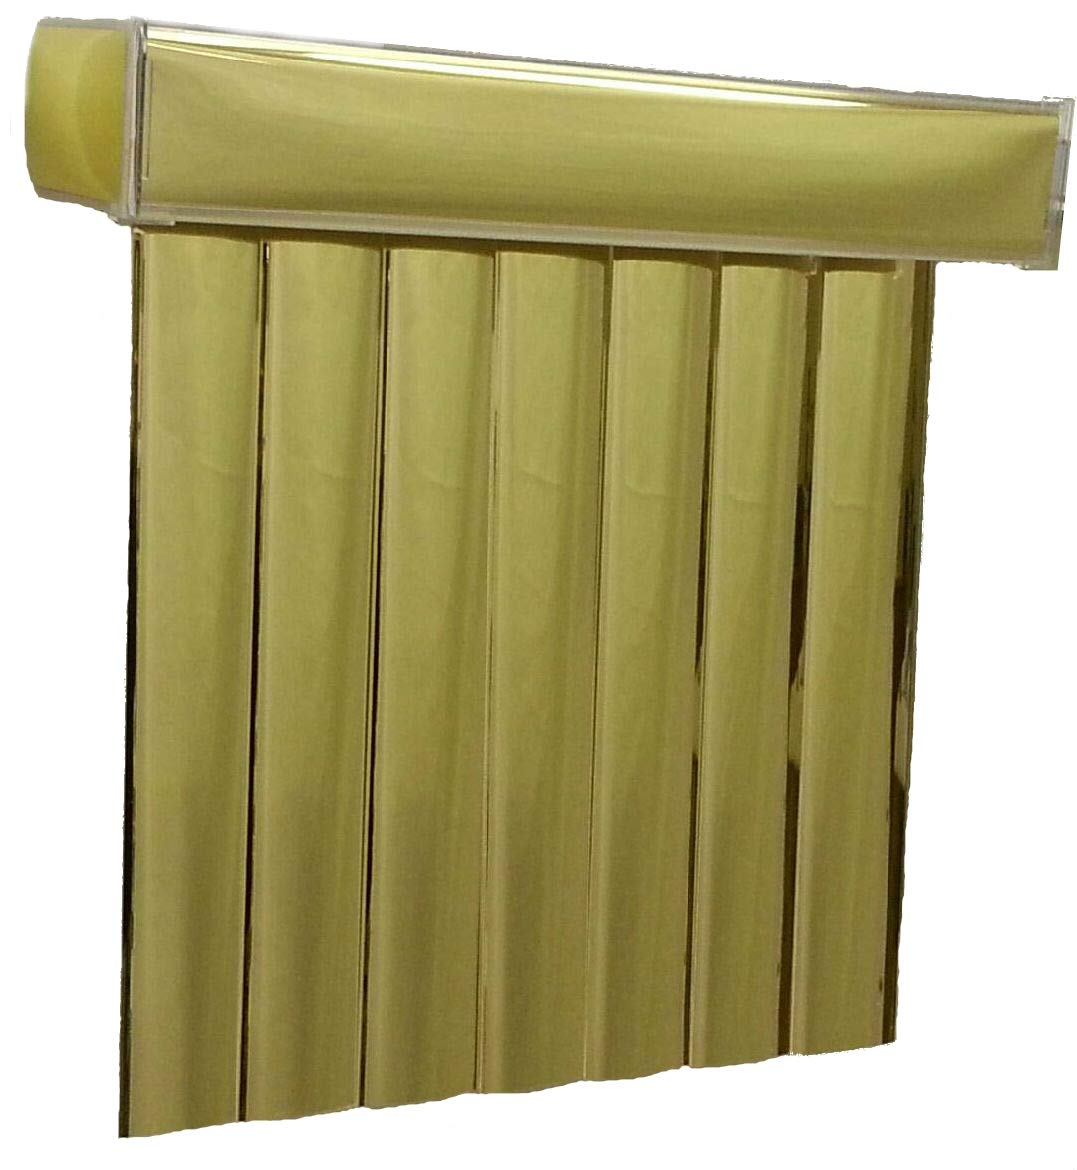 Gold Mirror Vinyl Vertical Blinds with 3-1/2'' Reflective Vanes, 48'' Wide x 84'' Long, Cordless by BlindDen